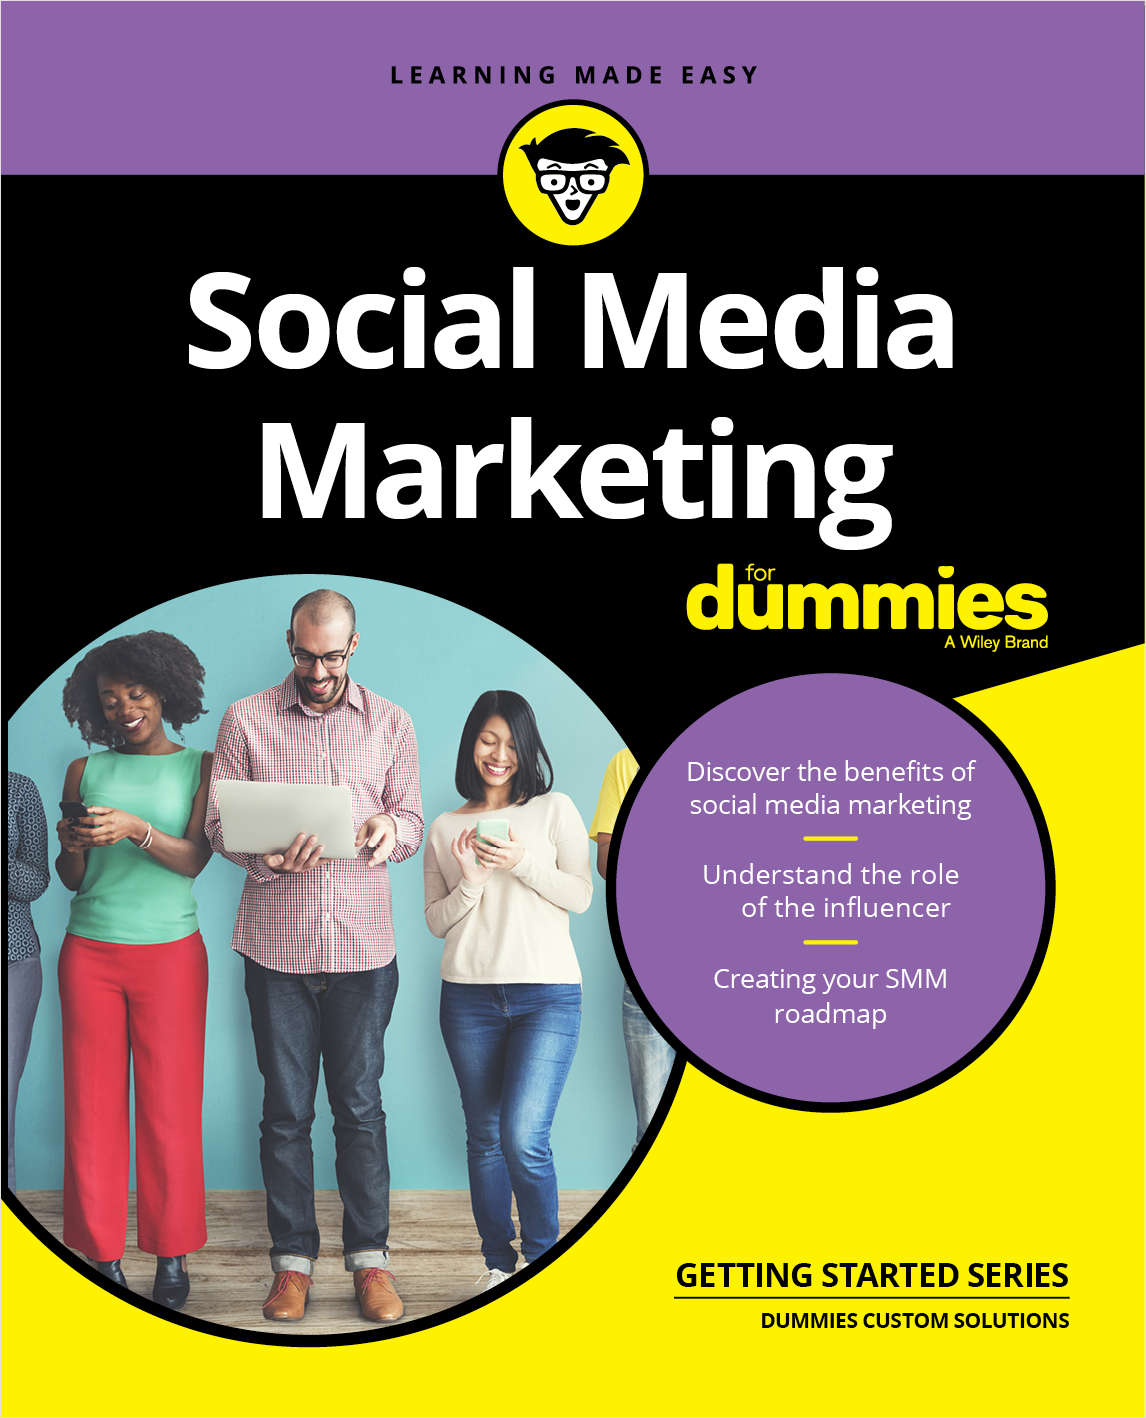 Getting Started with Social Media Marketing For Dummies